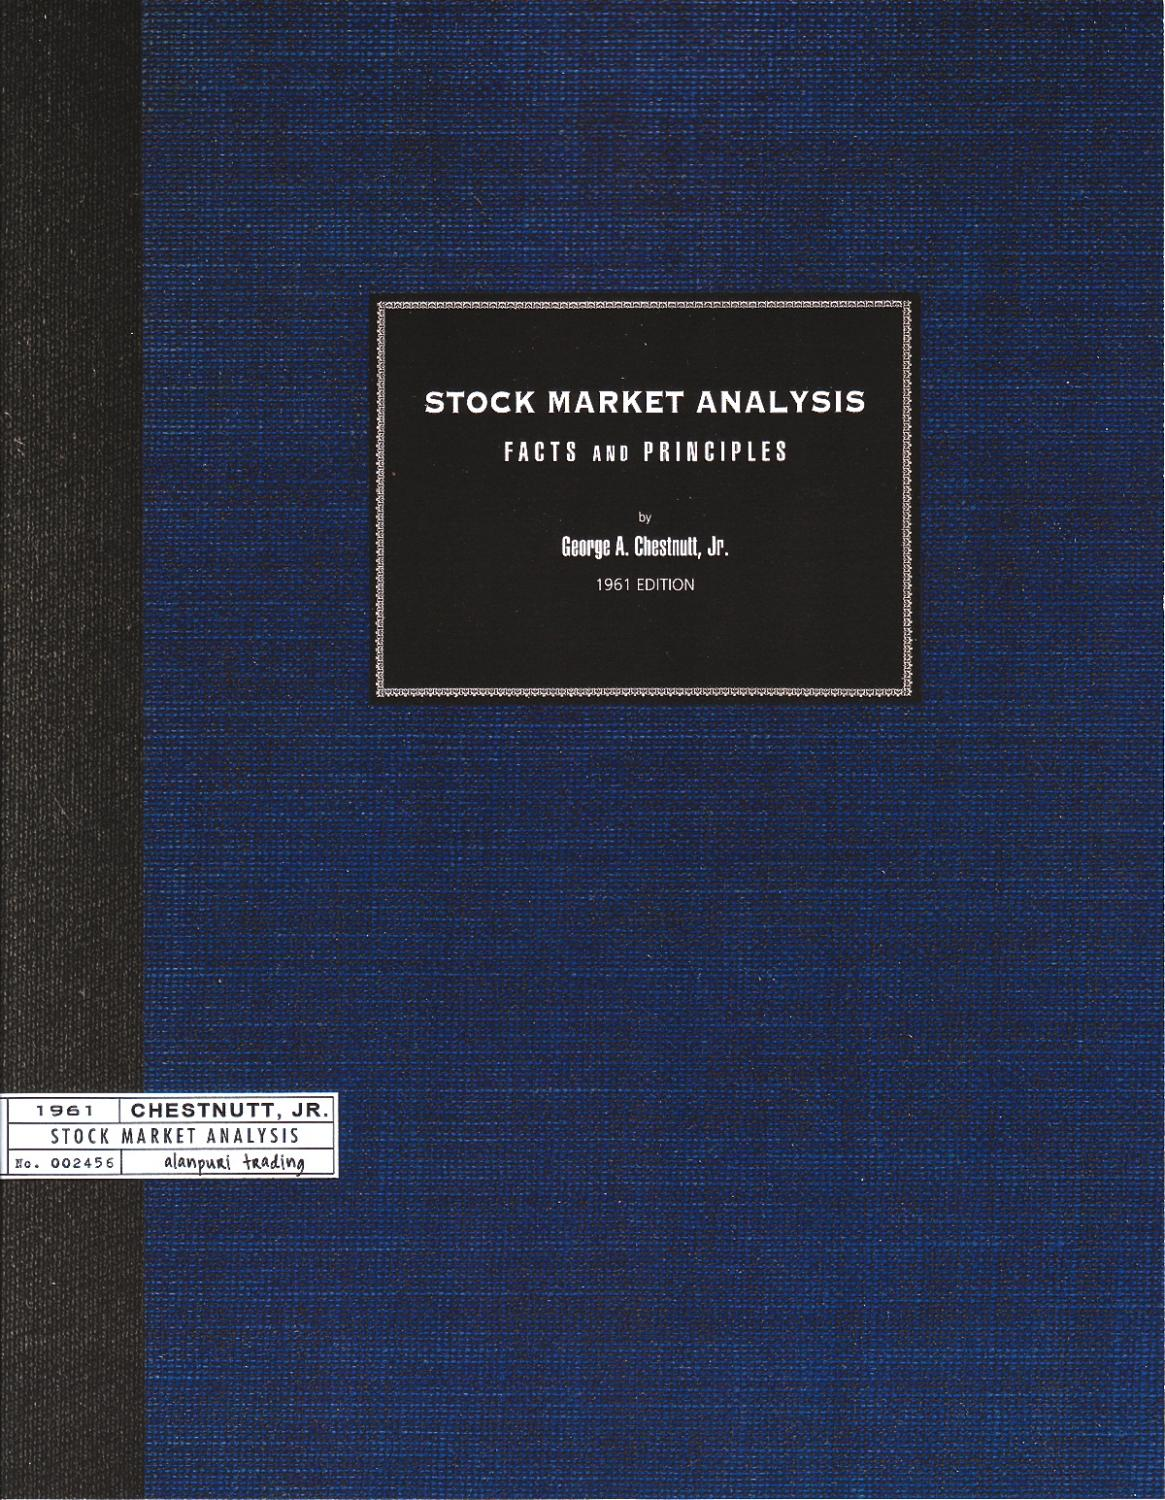 Stock Market Analysis: Facts and Principles